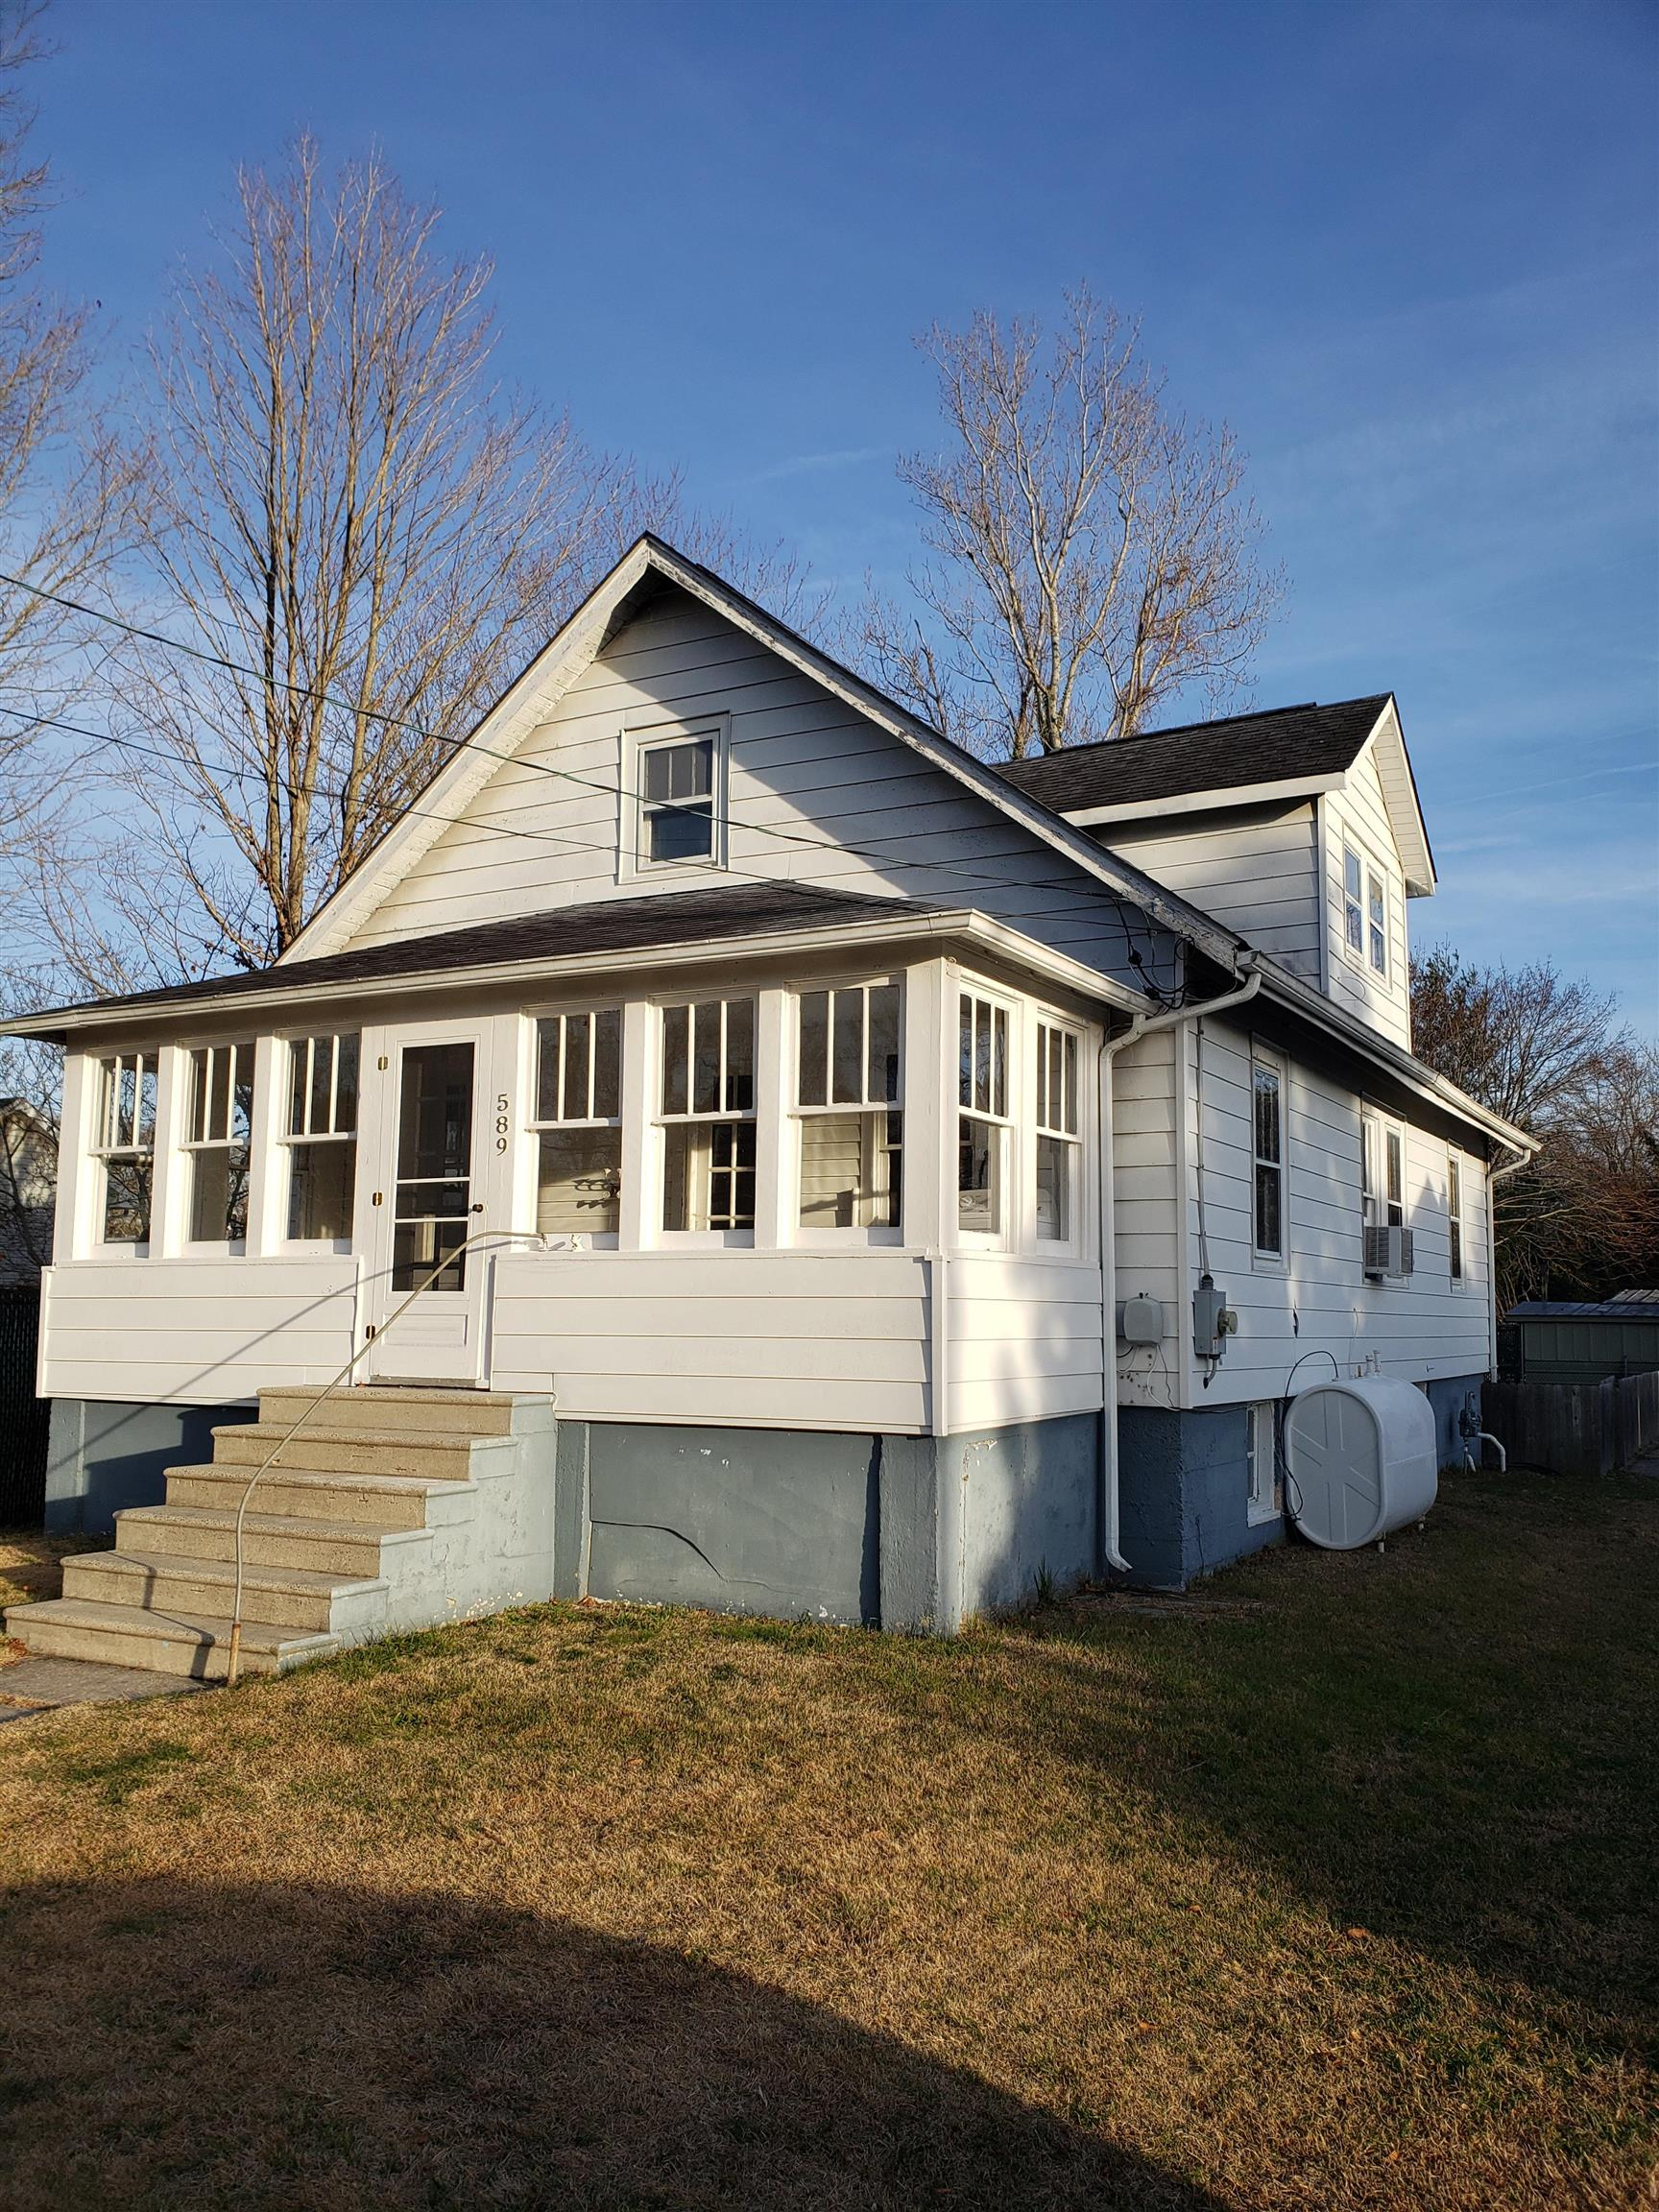 589 Route 9, Lower Township, NJ 08204